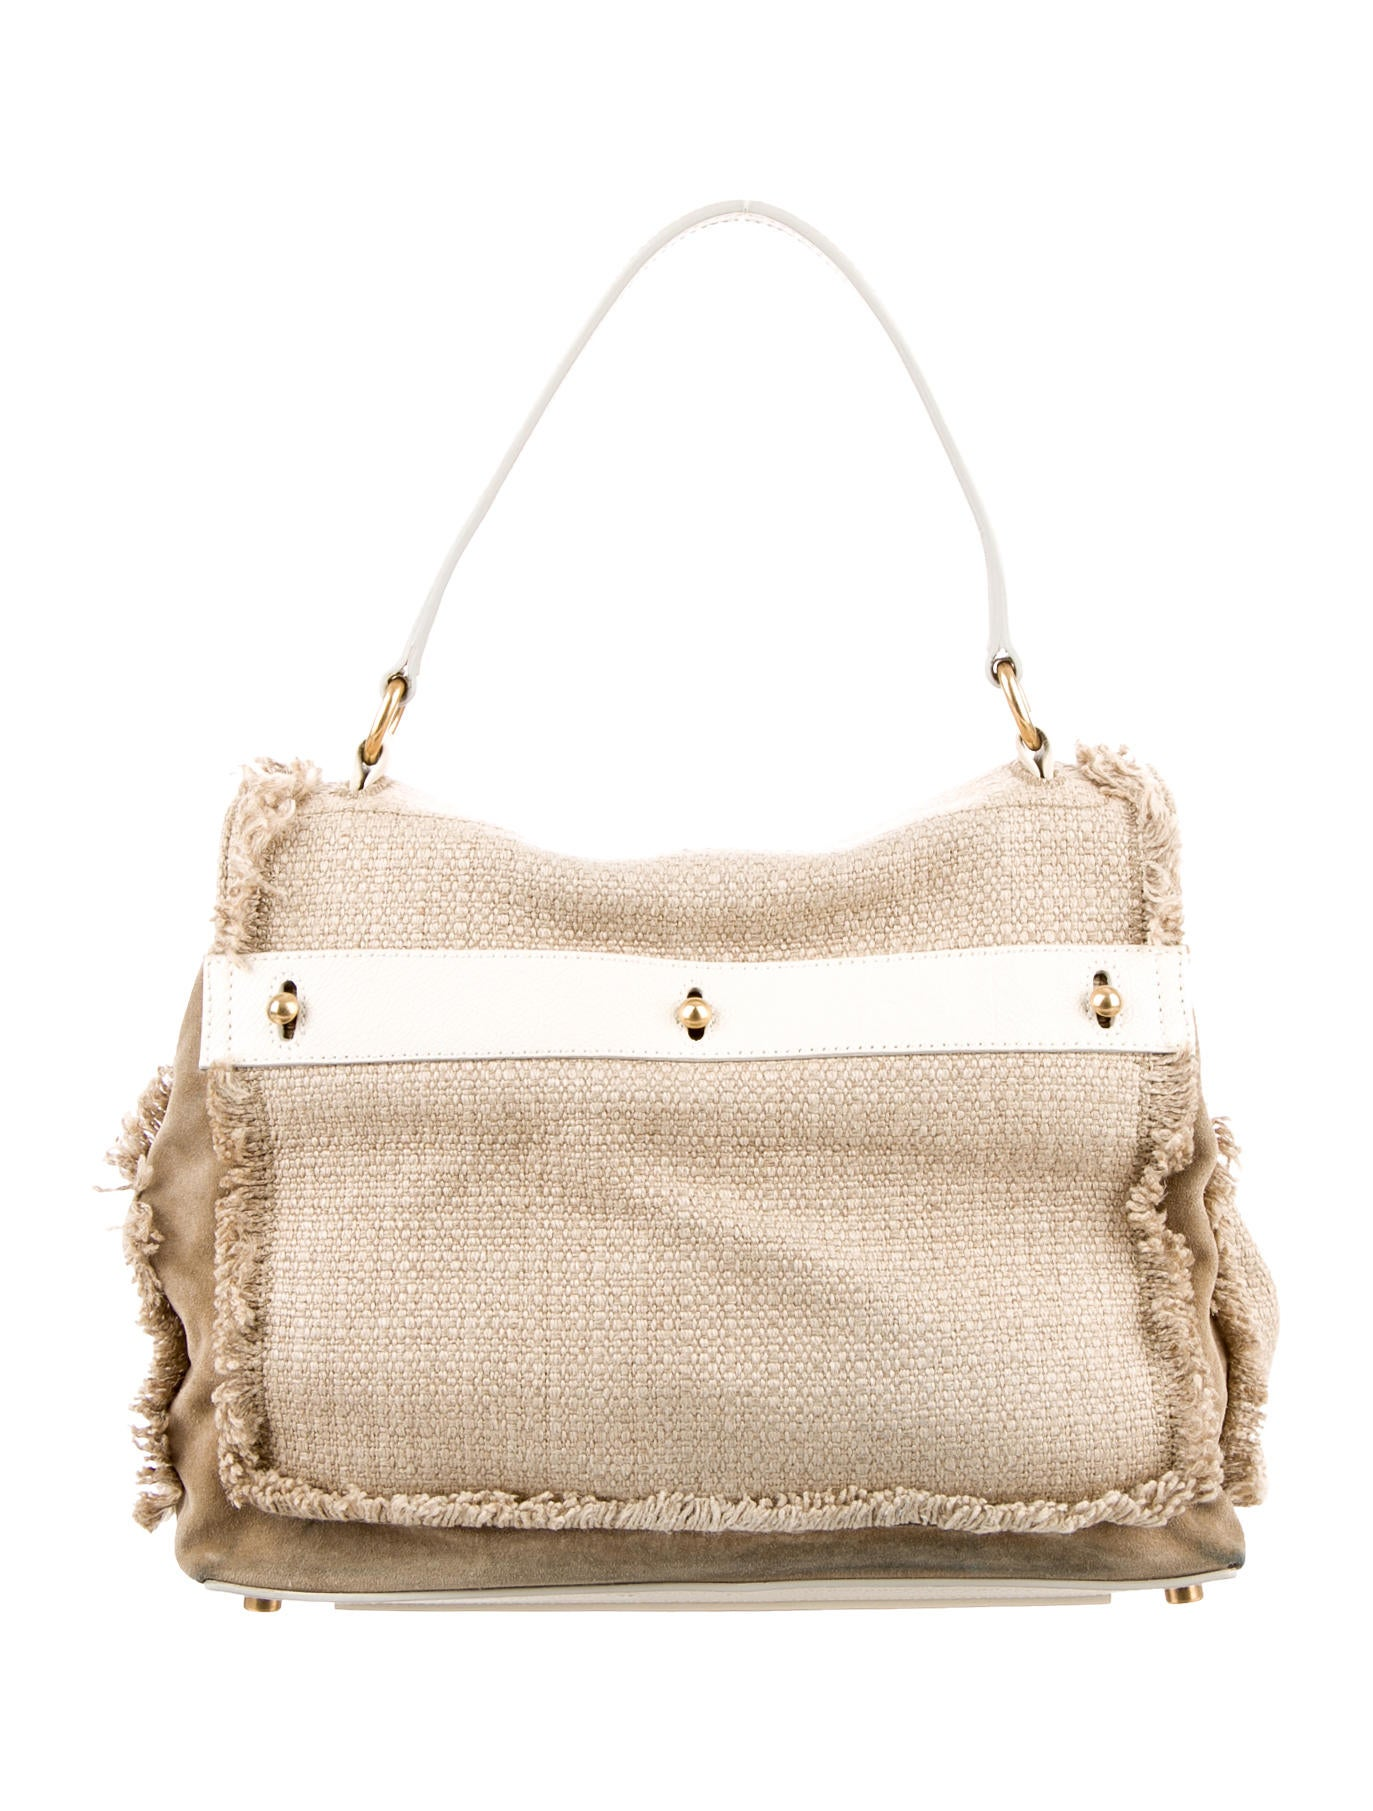 yves saint laurent shoulder bag - Yves Saint Laurent Raffia Muse Two Bag - Handbags - YVE40311 | The ...